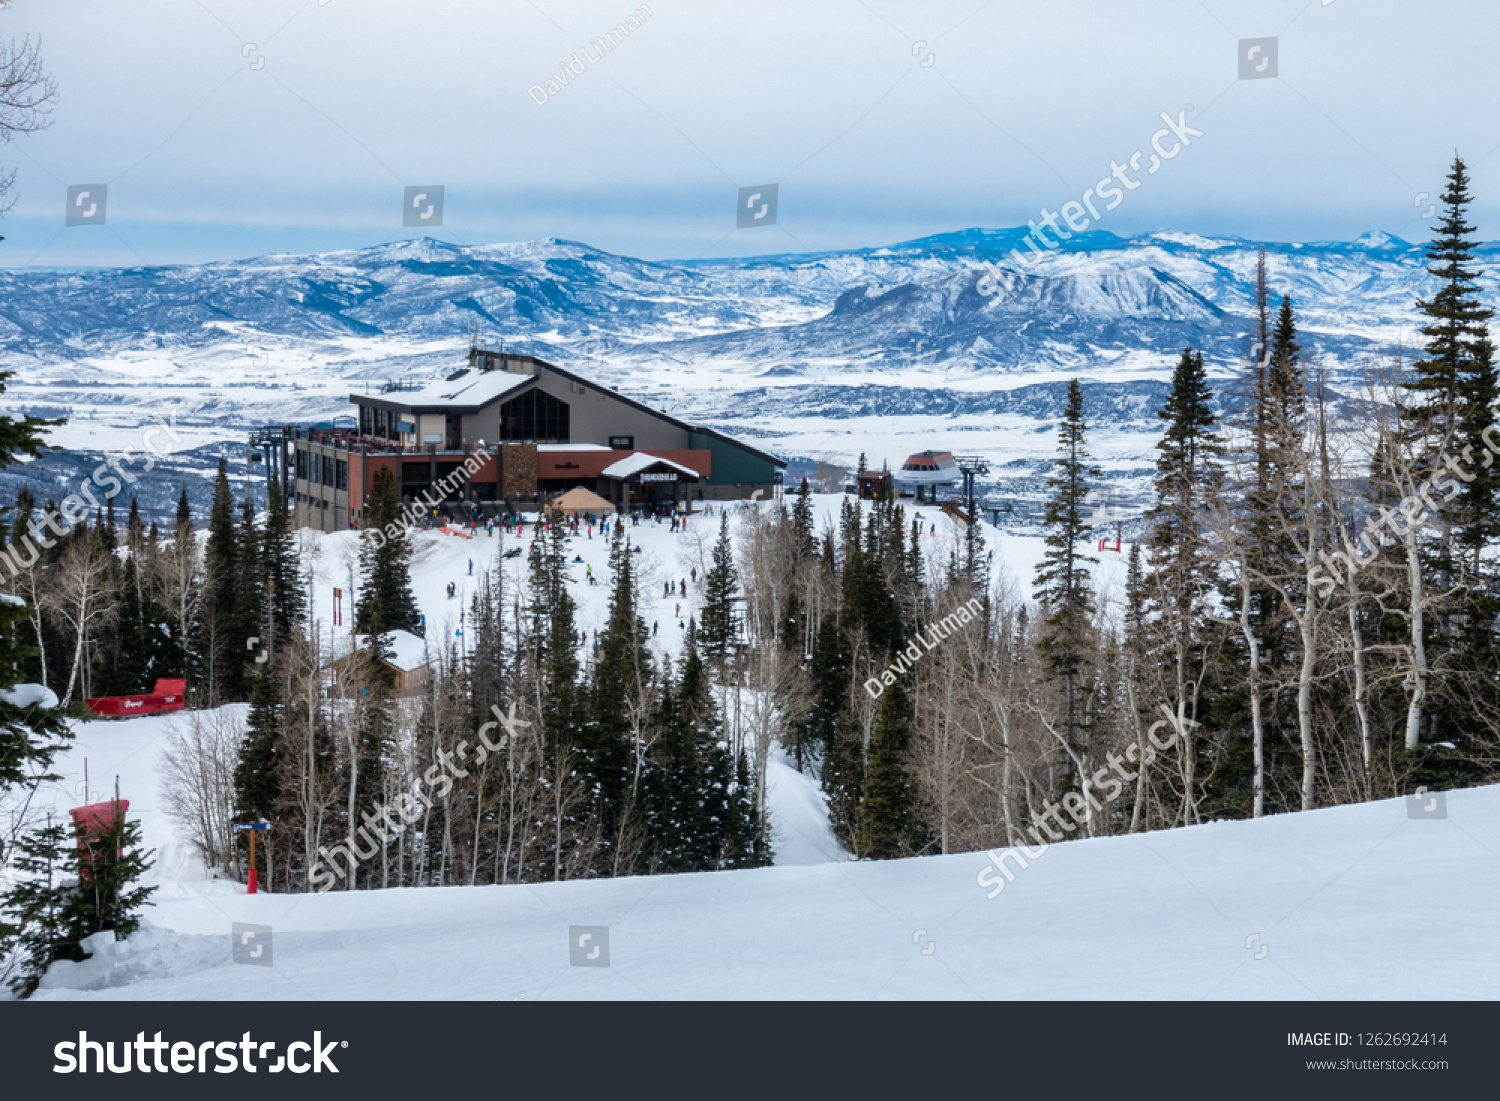 Steamboat Springs, Colorado - December 17, 2018: The Thunderhead Lodge on Mount Werner of the Steamboat Springs Ski Resort can be seen down-slope with a view of the Rocky Mountains in the background.